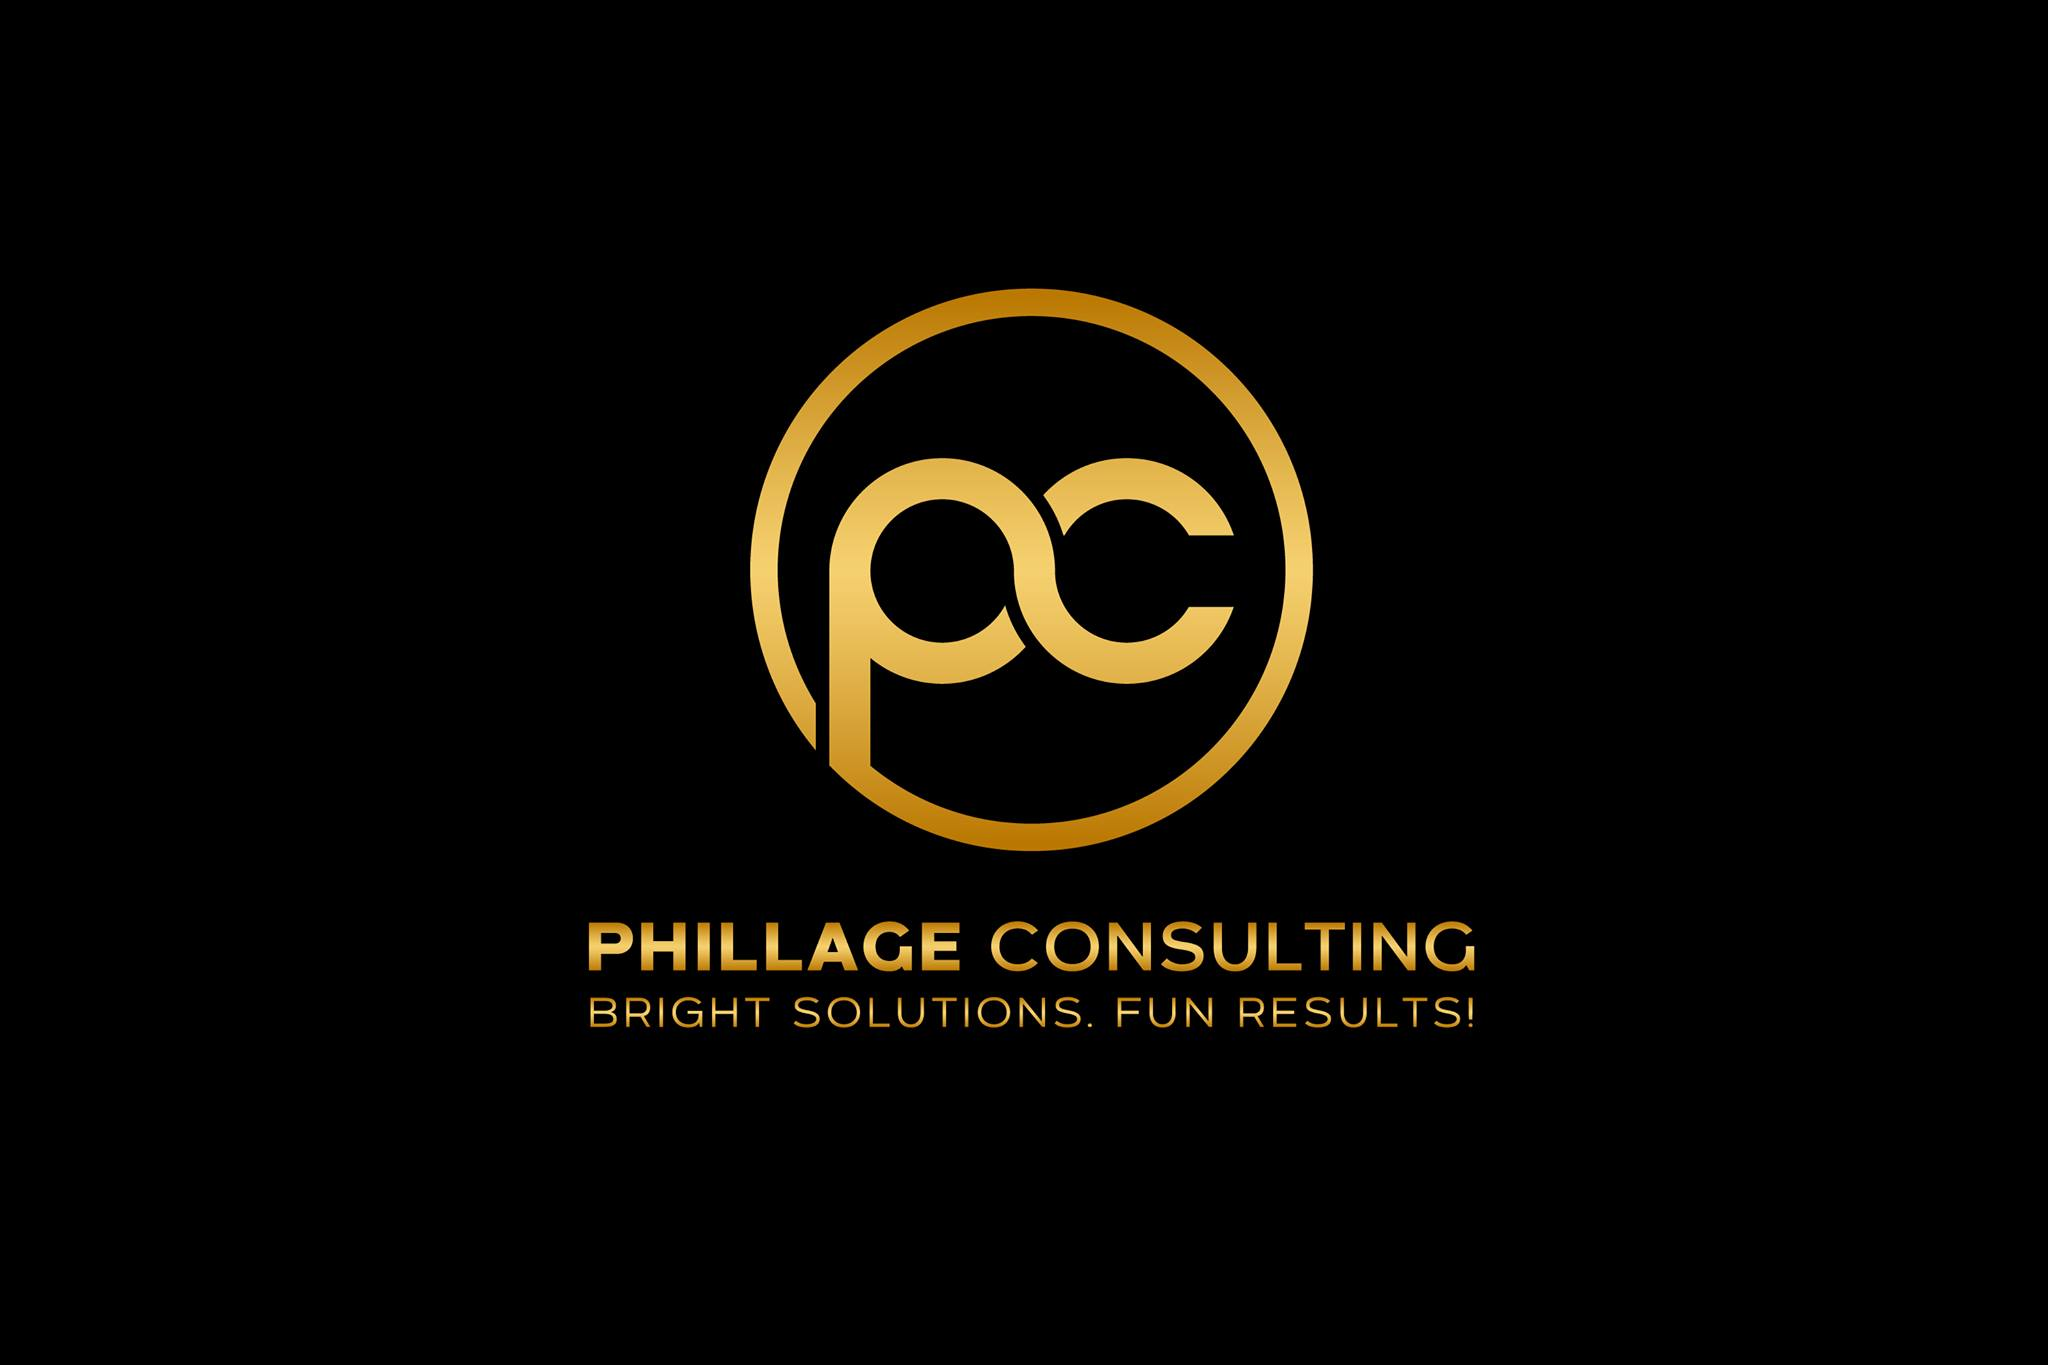 Phillage Consulting